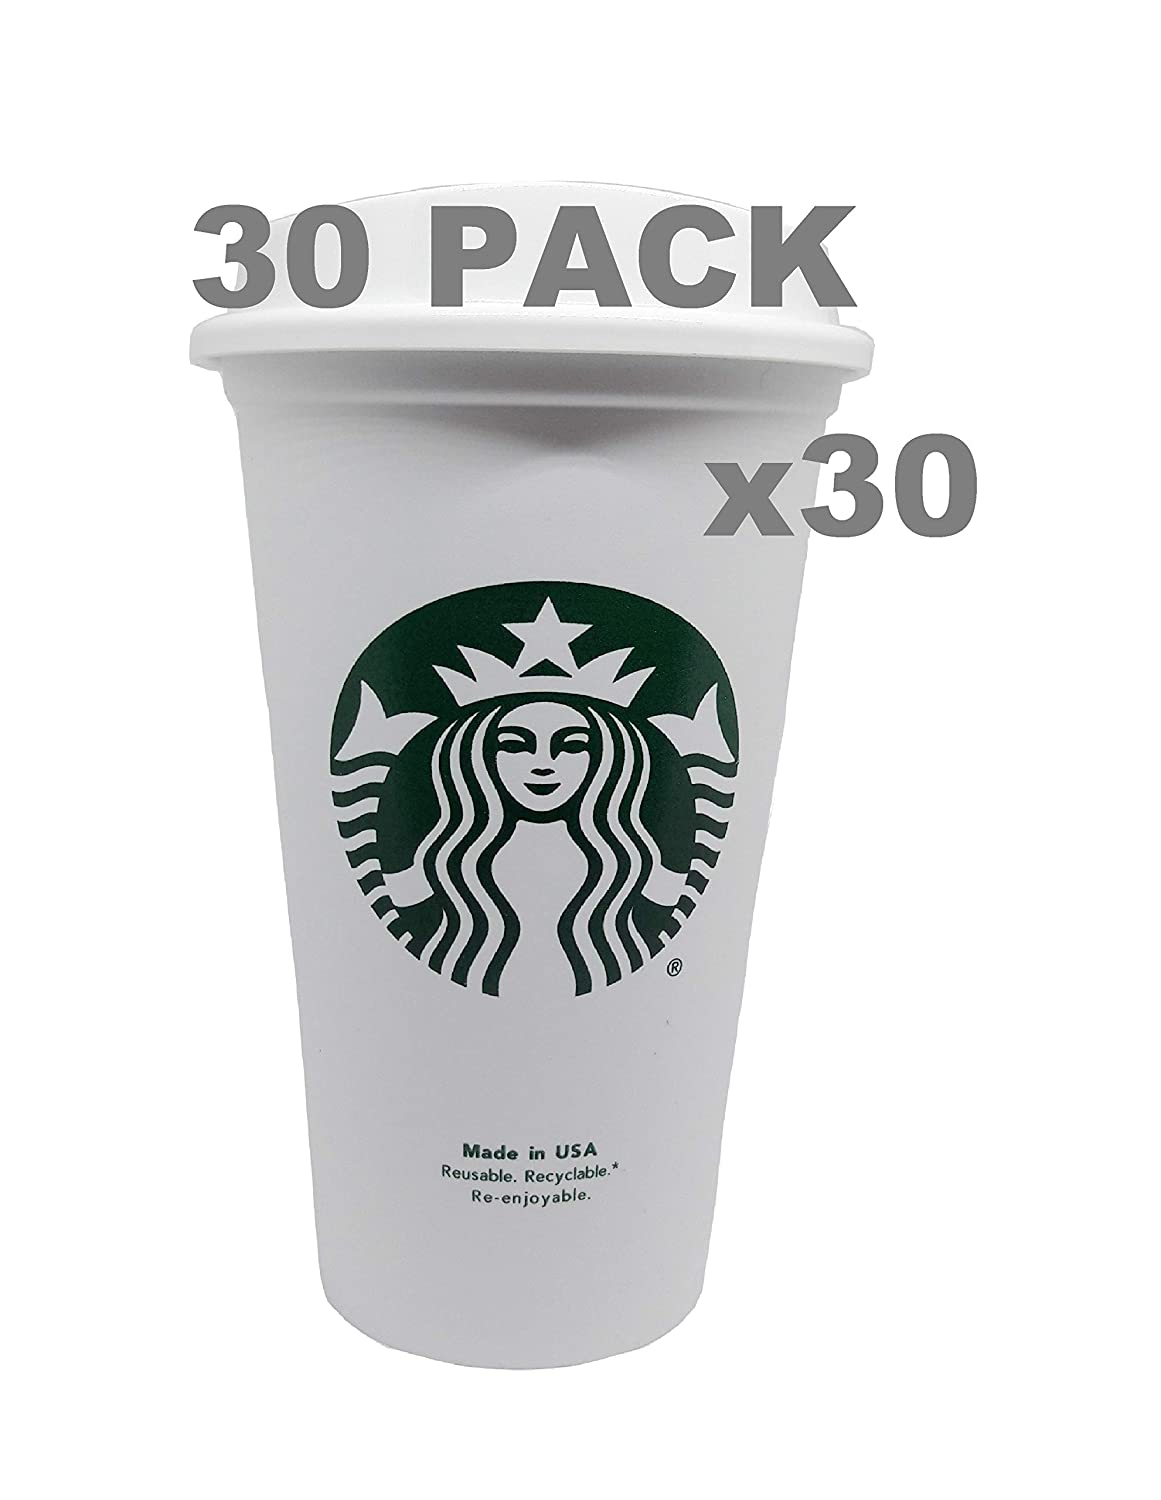 Starbucks Reusable Travel Cup To Go Coffee Cup (Grande 16 Oz)3 pack